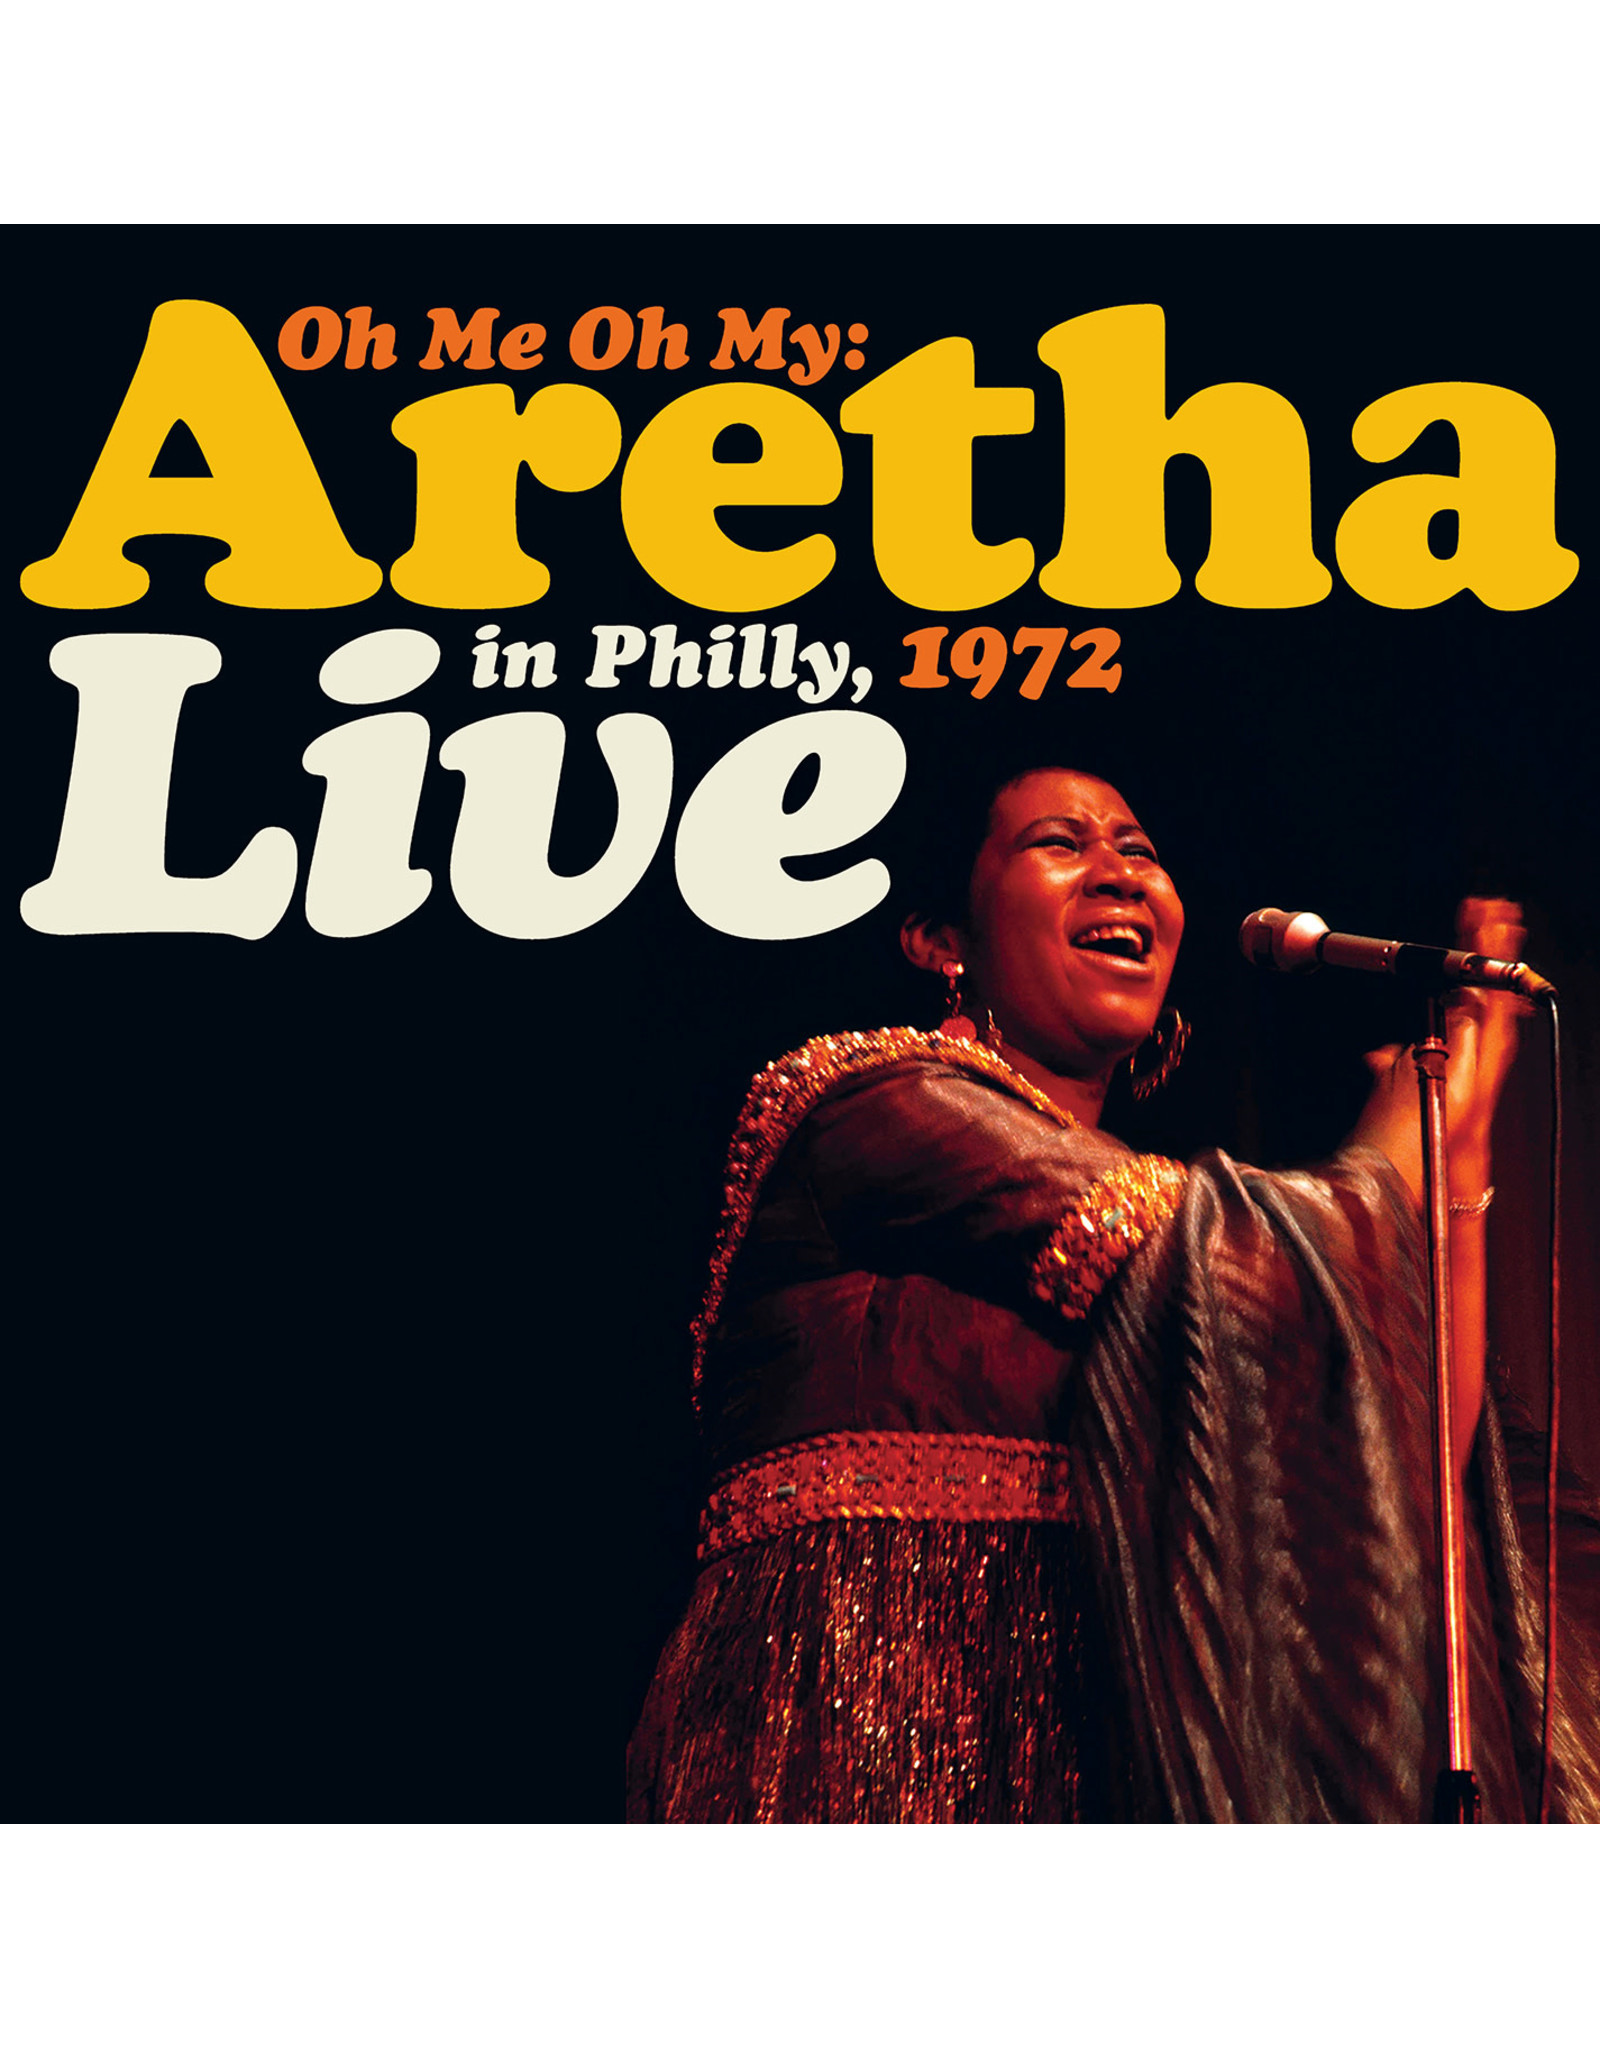 Franklin, Aretha - Oh Me Oh My: Aretha Live In Philly, 1972 2LP (RSD Orange/Yellow vinyl)